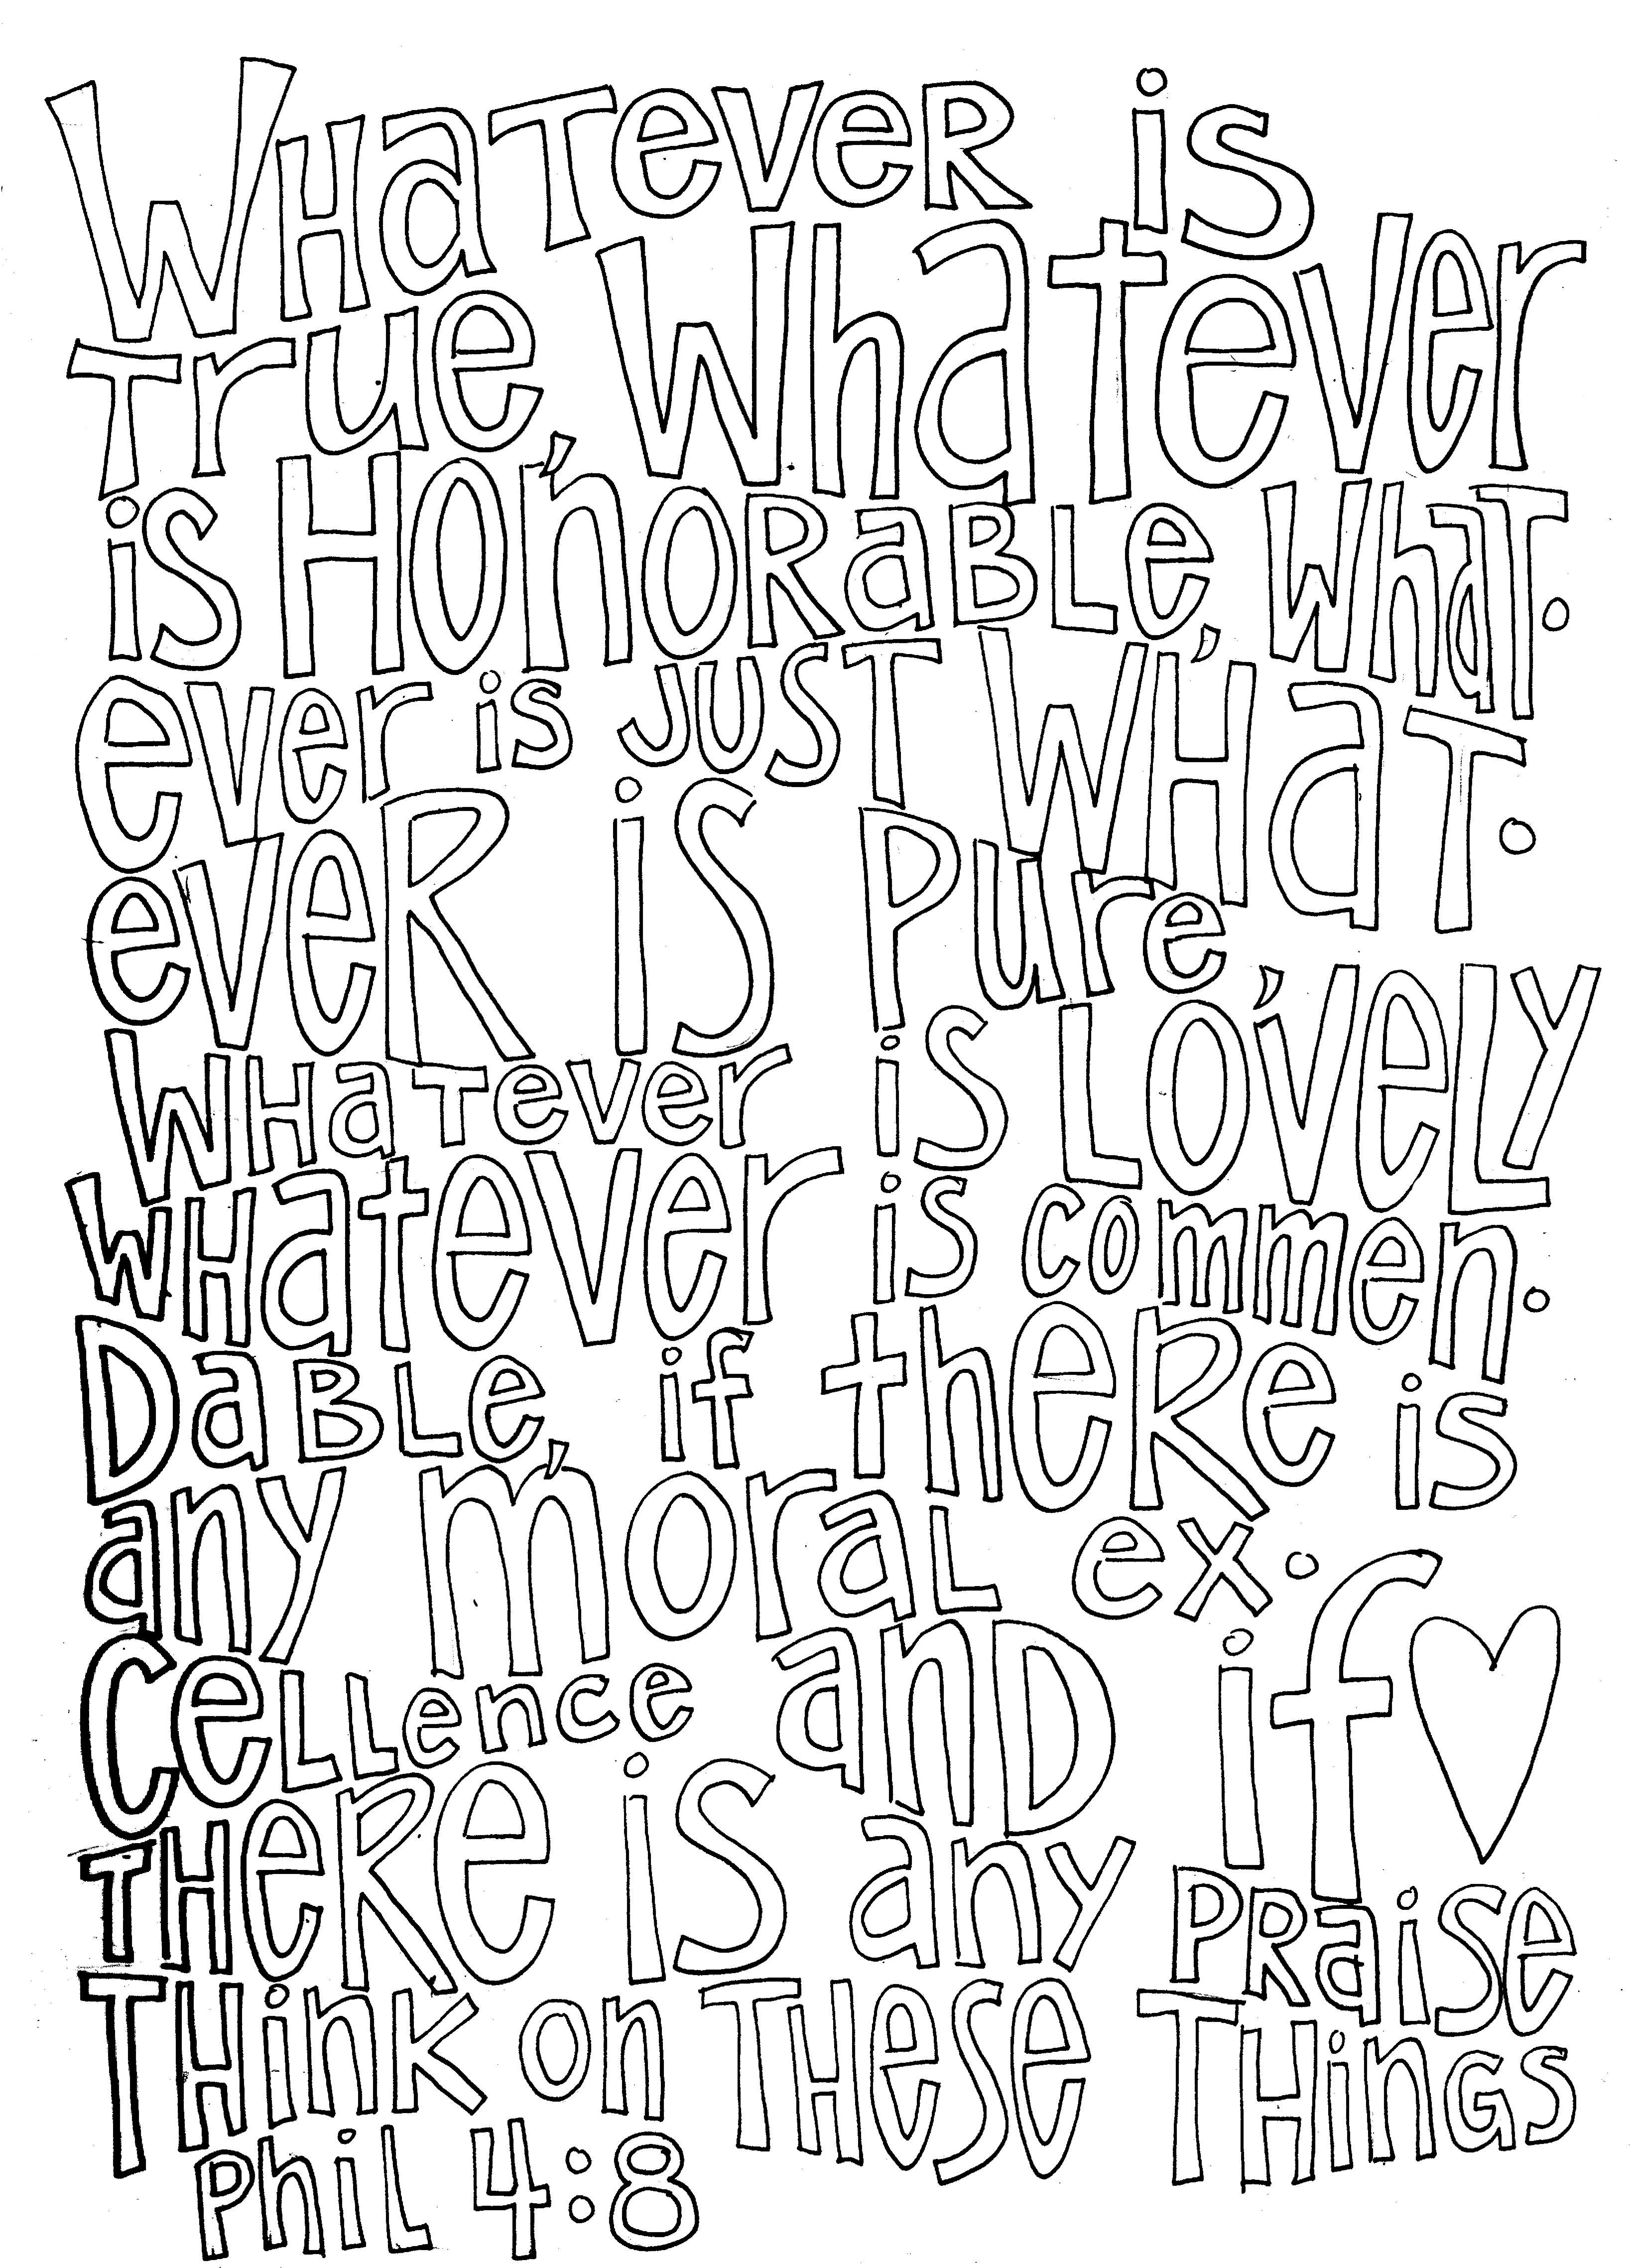 Think On These Things Philippians 4 8 Coloring Page